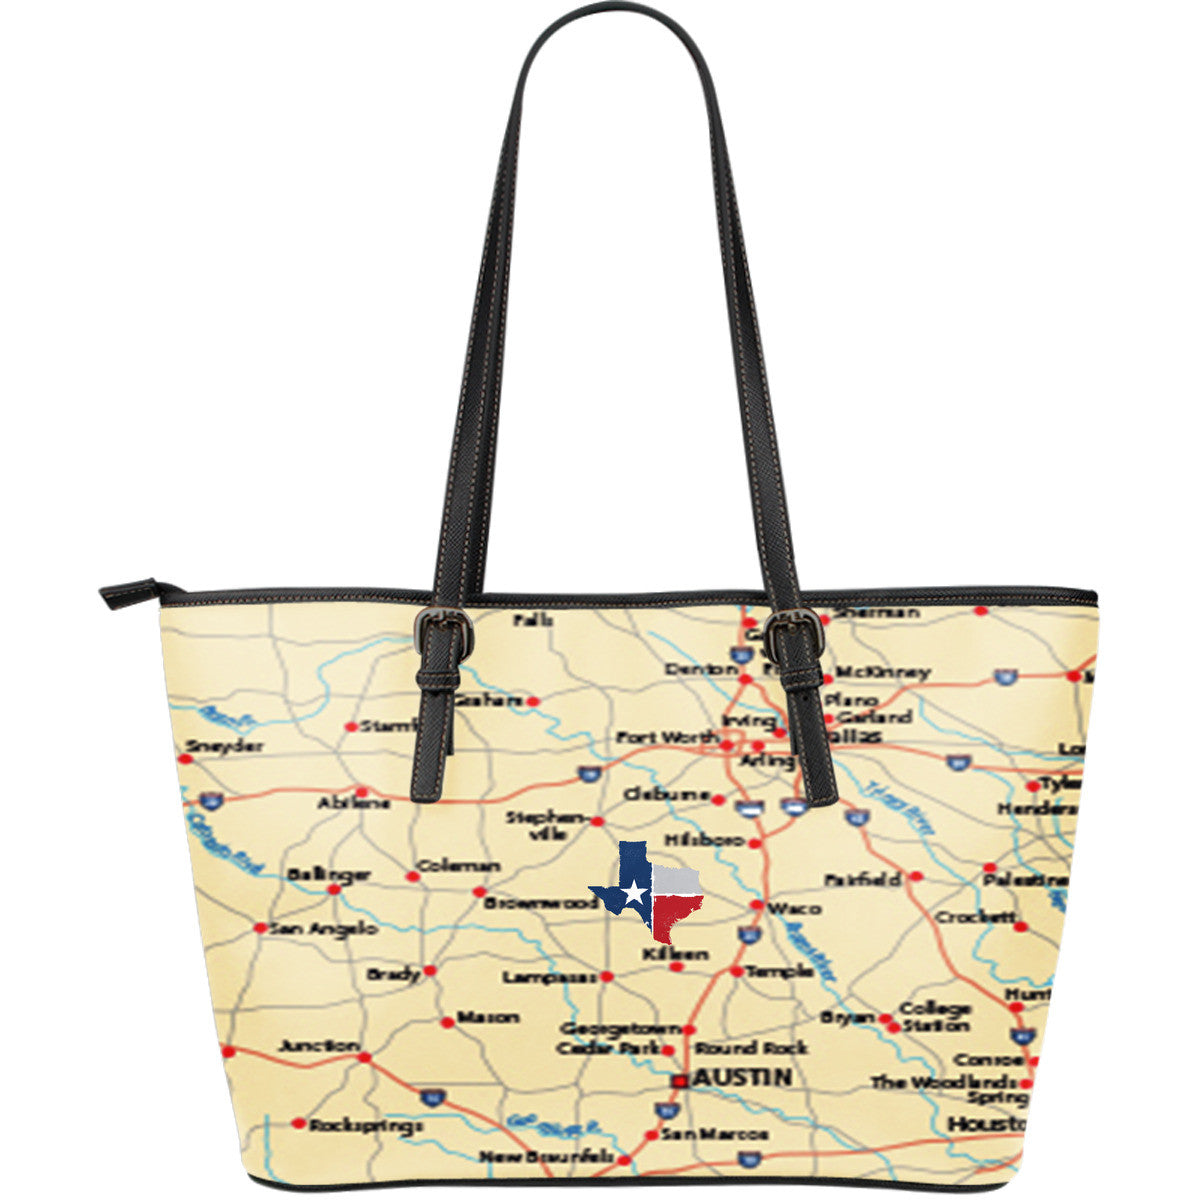 Texas (TX) Premium Leather Tote